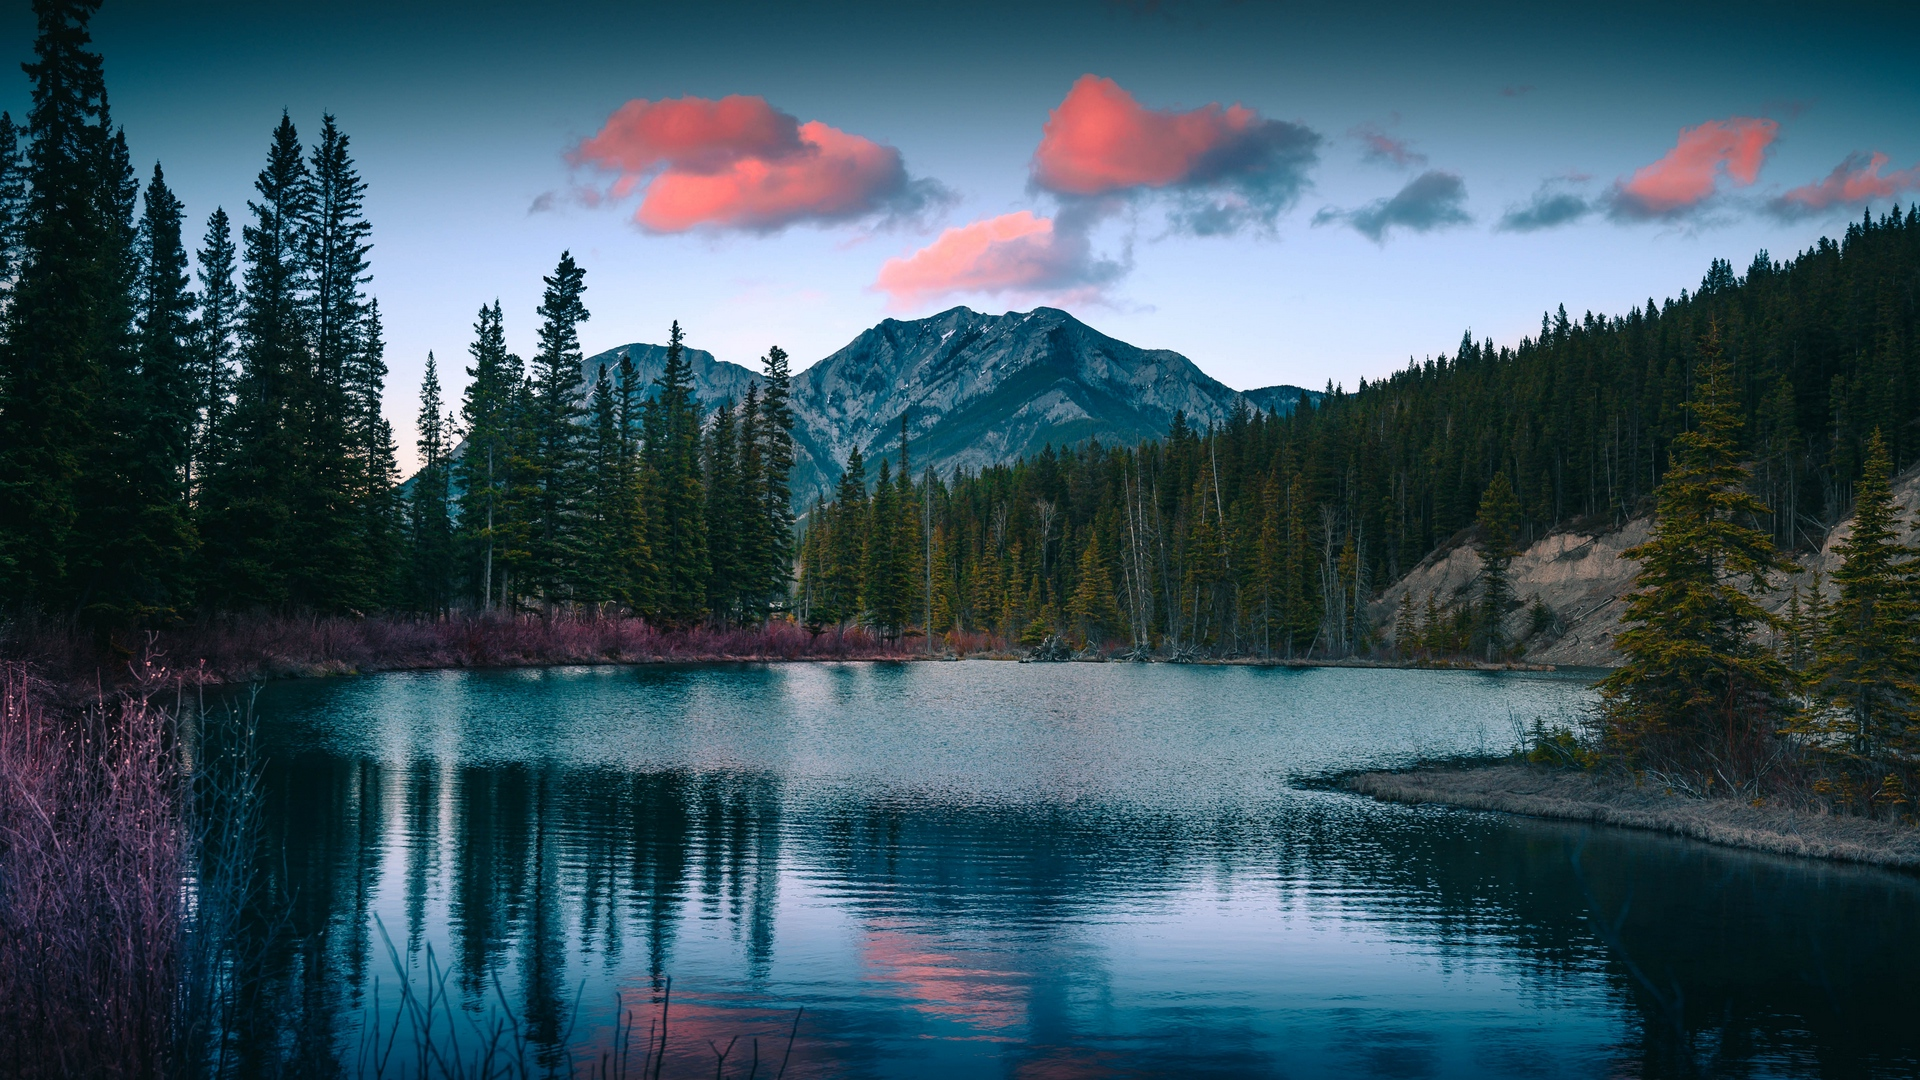 nature wallpaper full hd,nature,reflection,natural landscape,sky,mountain